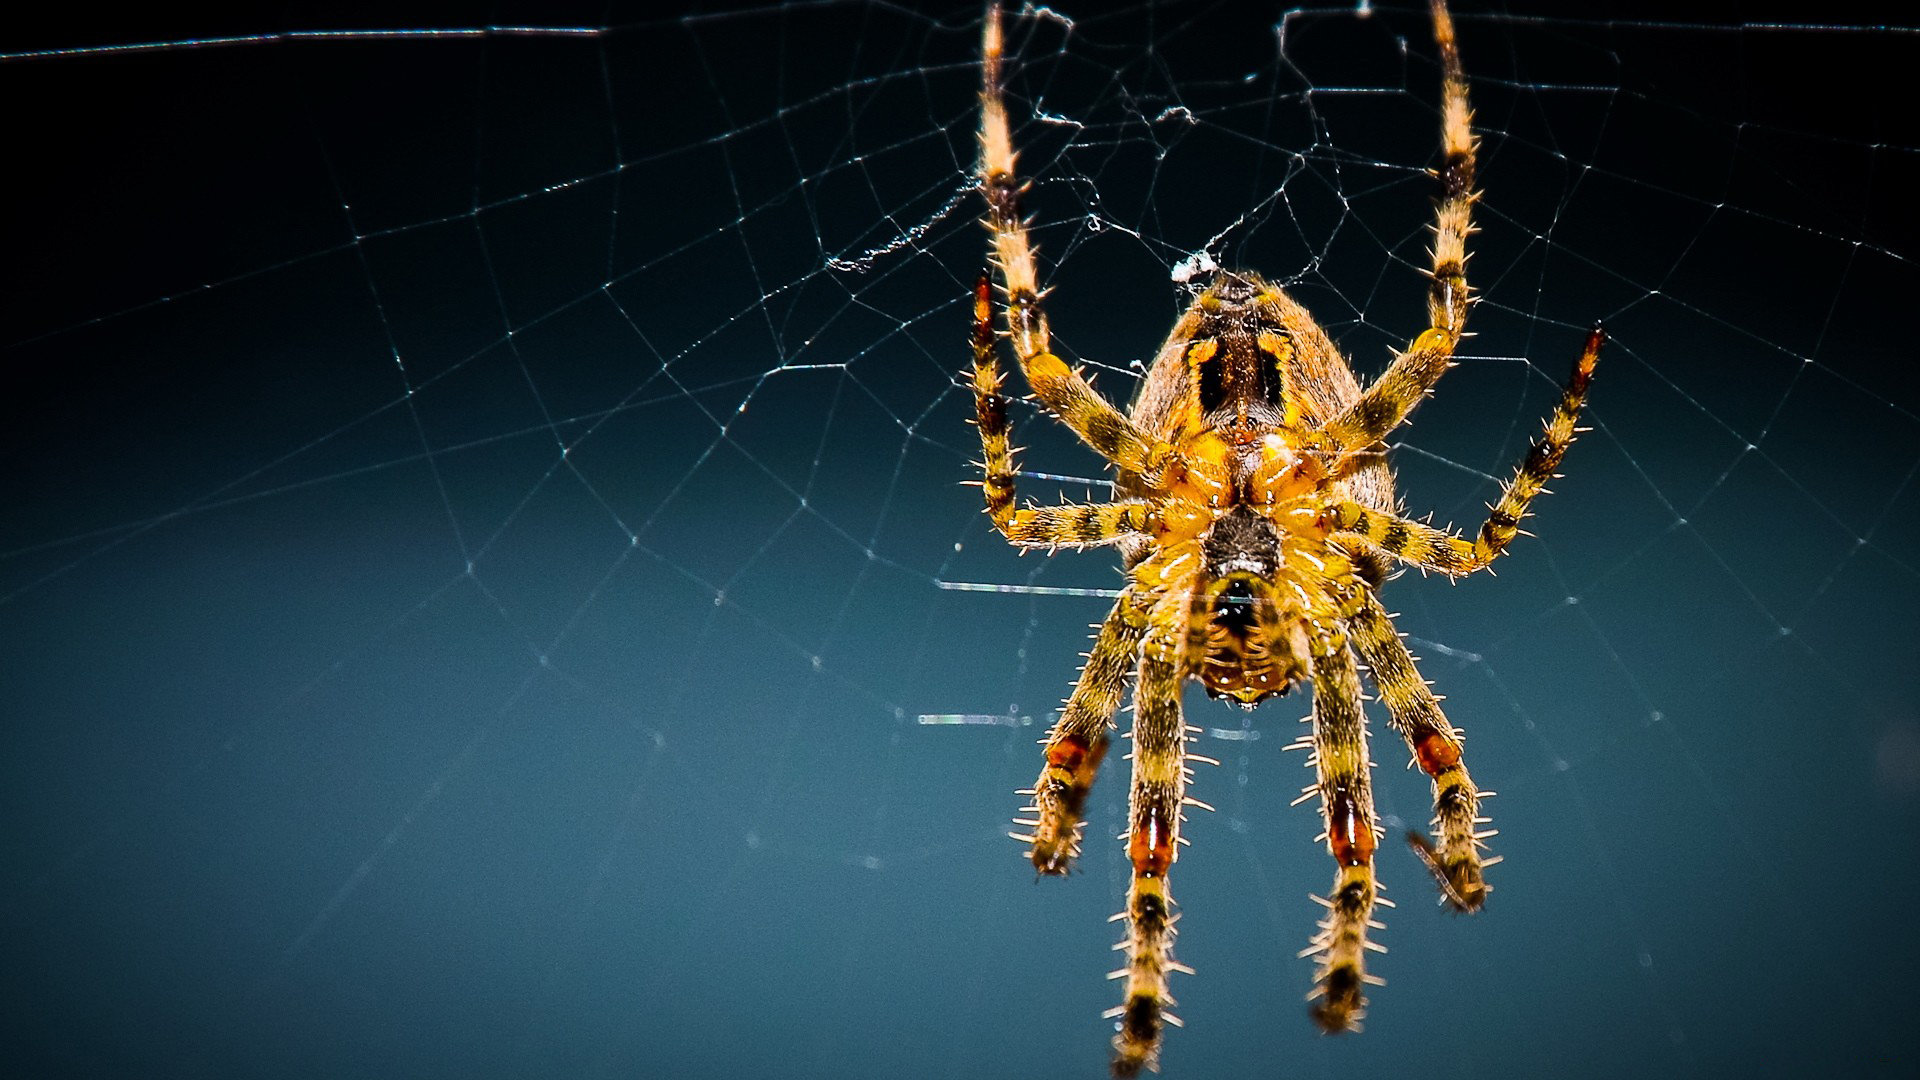 Free download Spider background ID:22083 full hd 1920x1080 for PC